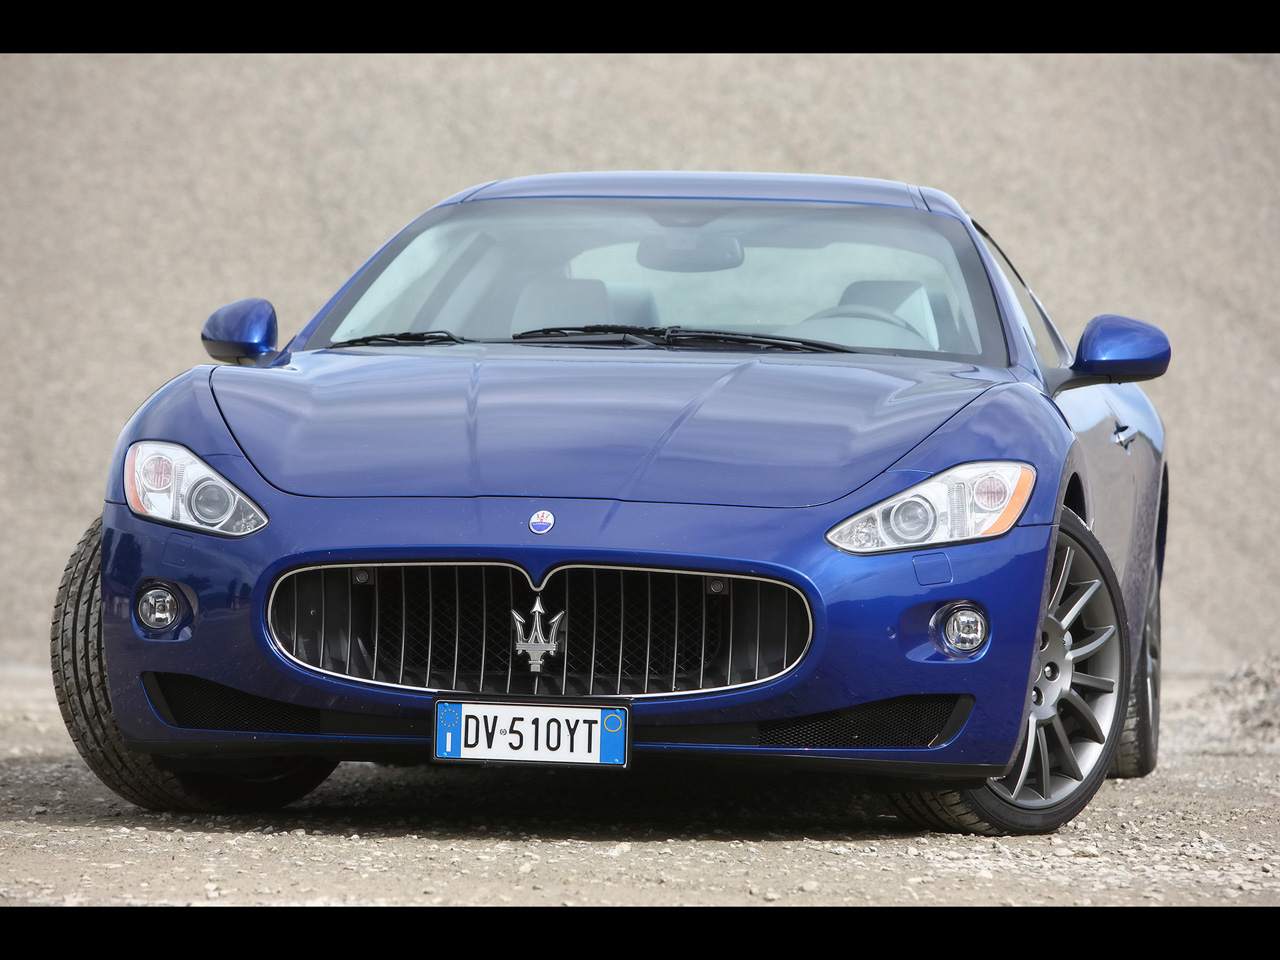 Maserati Gran Turismo S Automatic Blue Front Angle High Resolution Wallpaper Free